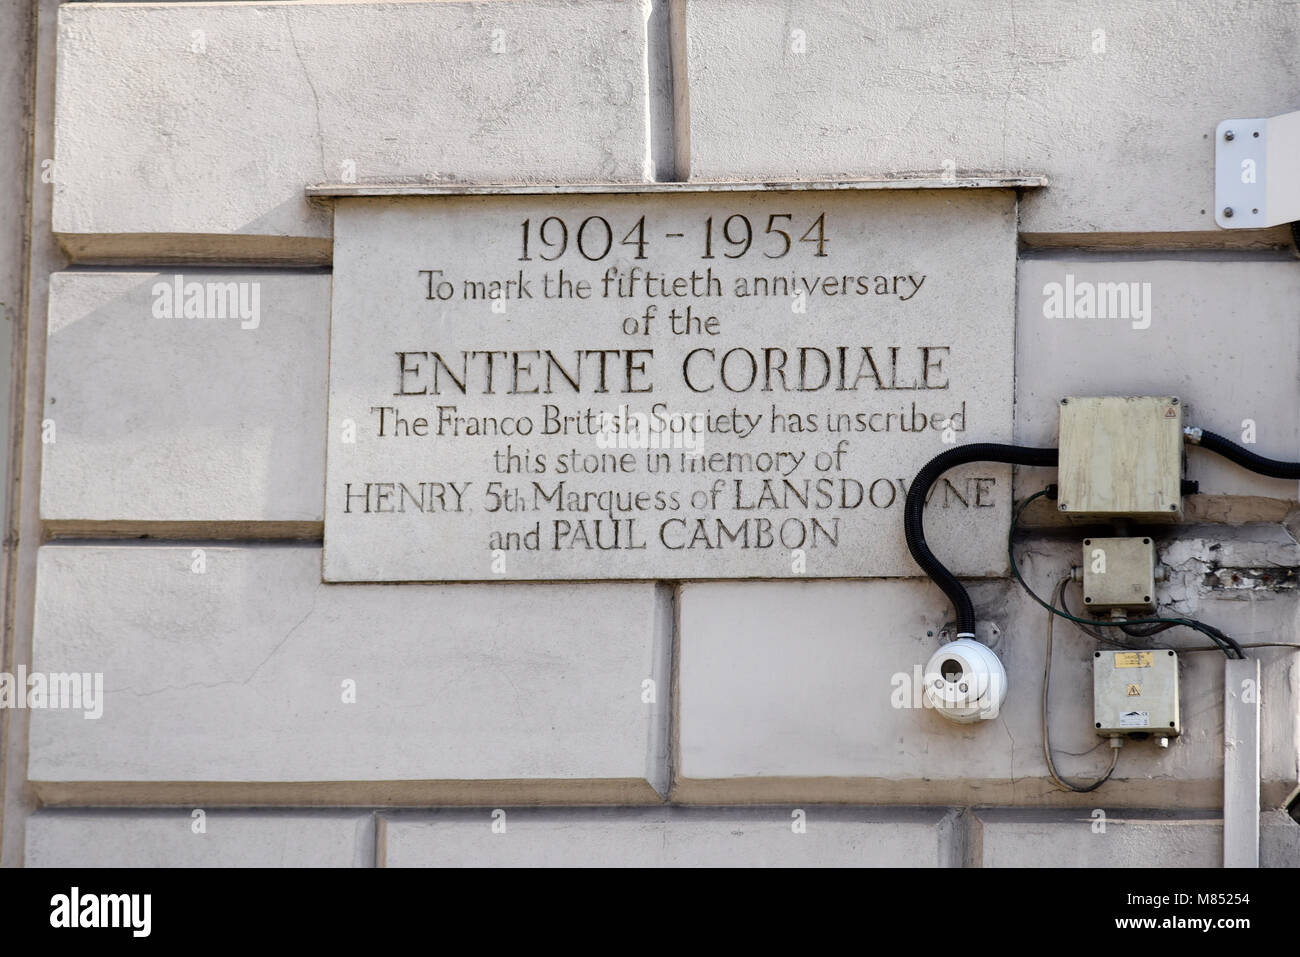 Embassy of France in London is the diplomatic mission of France to the United Kingdom. Fiftieth anniversary plaque - Stock Image